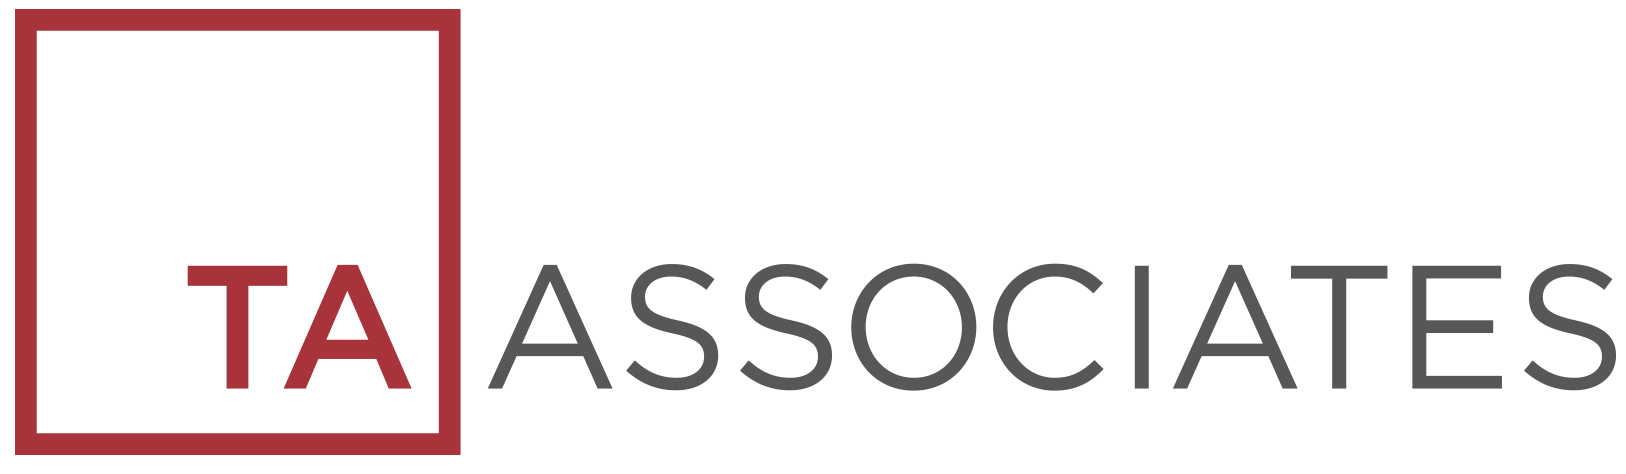 TA Associates | A Leading, Global Growth Private Equity Firm